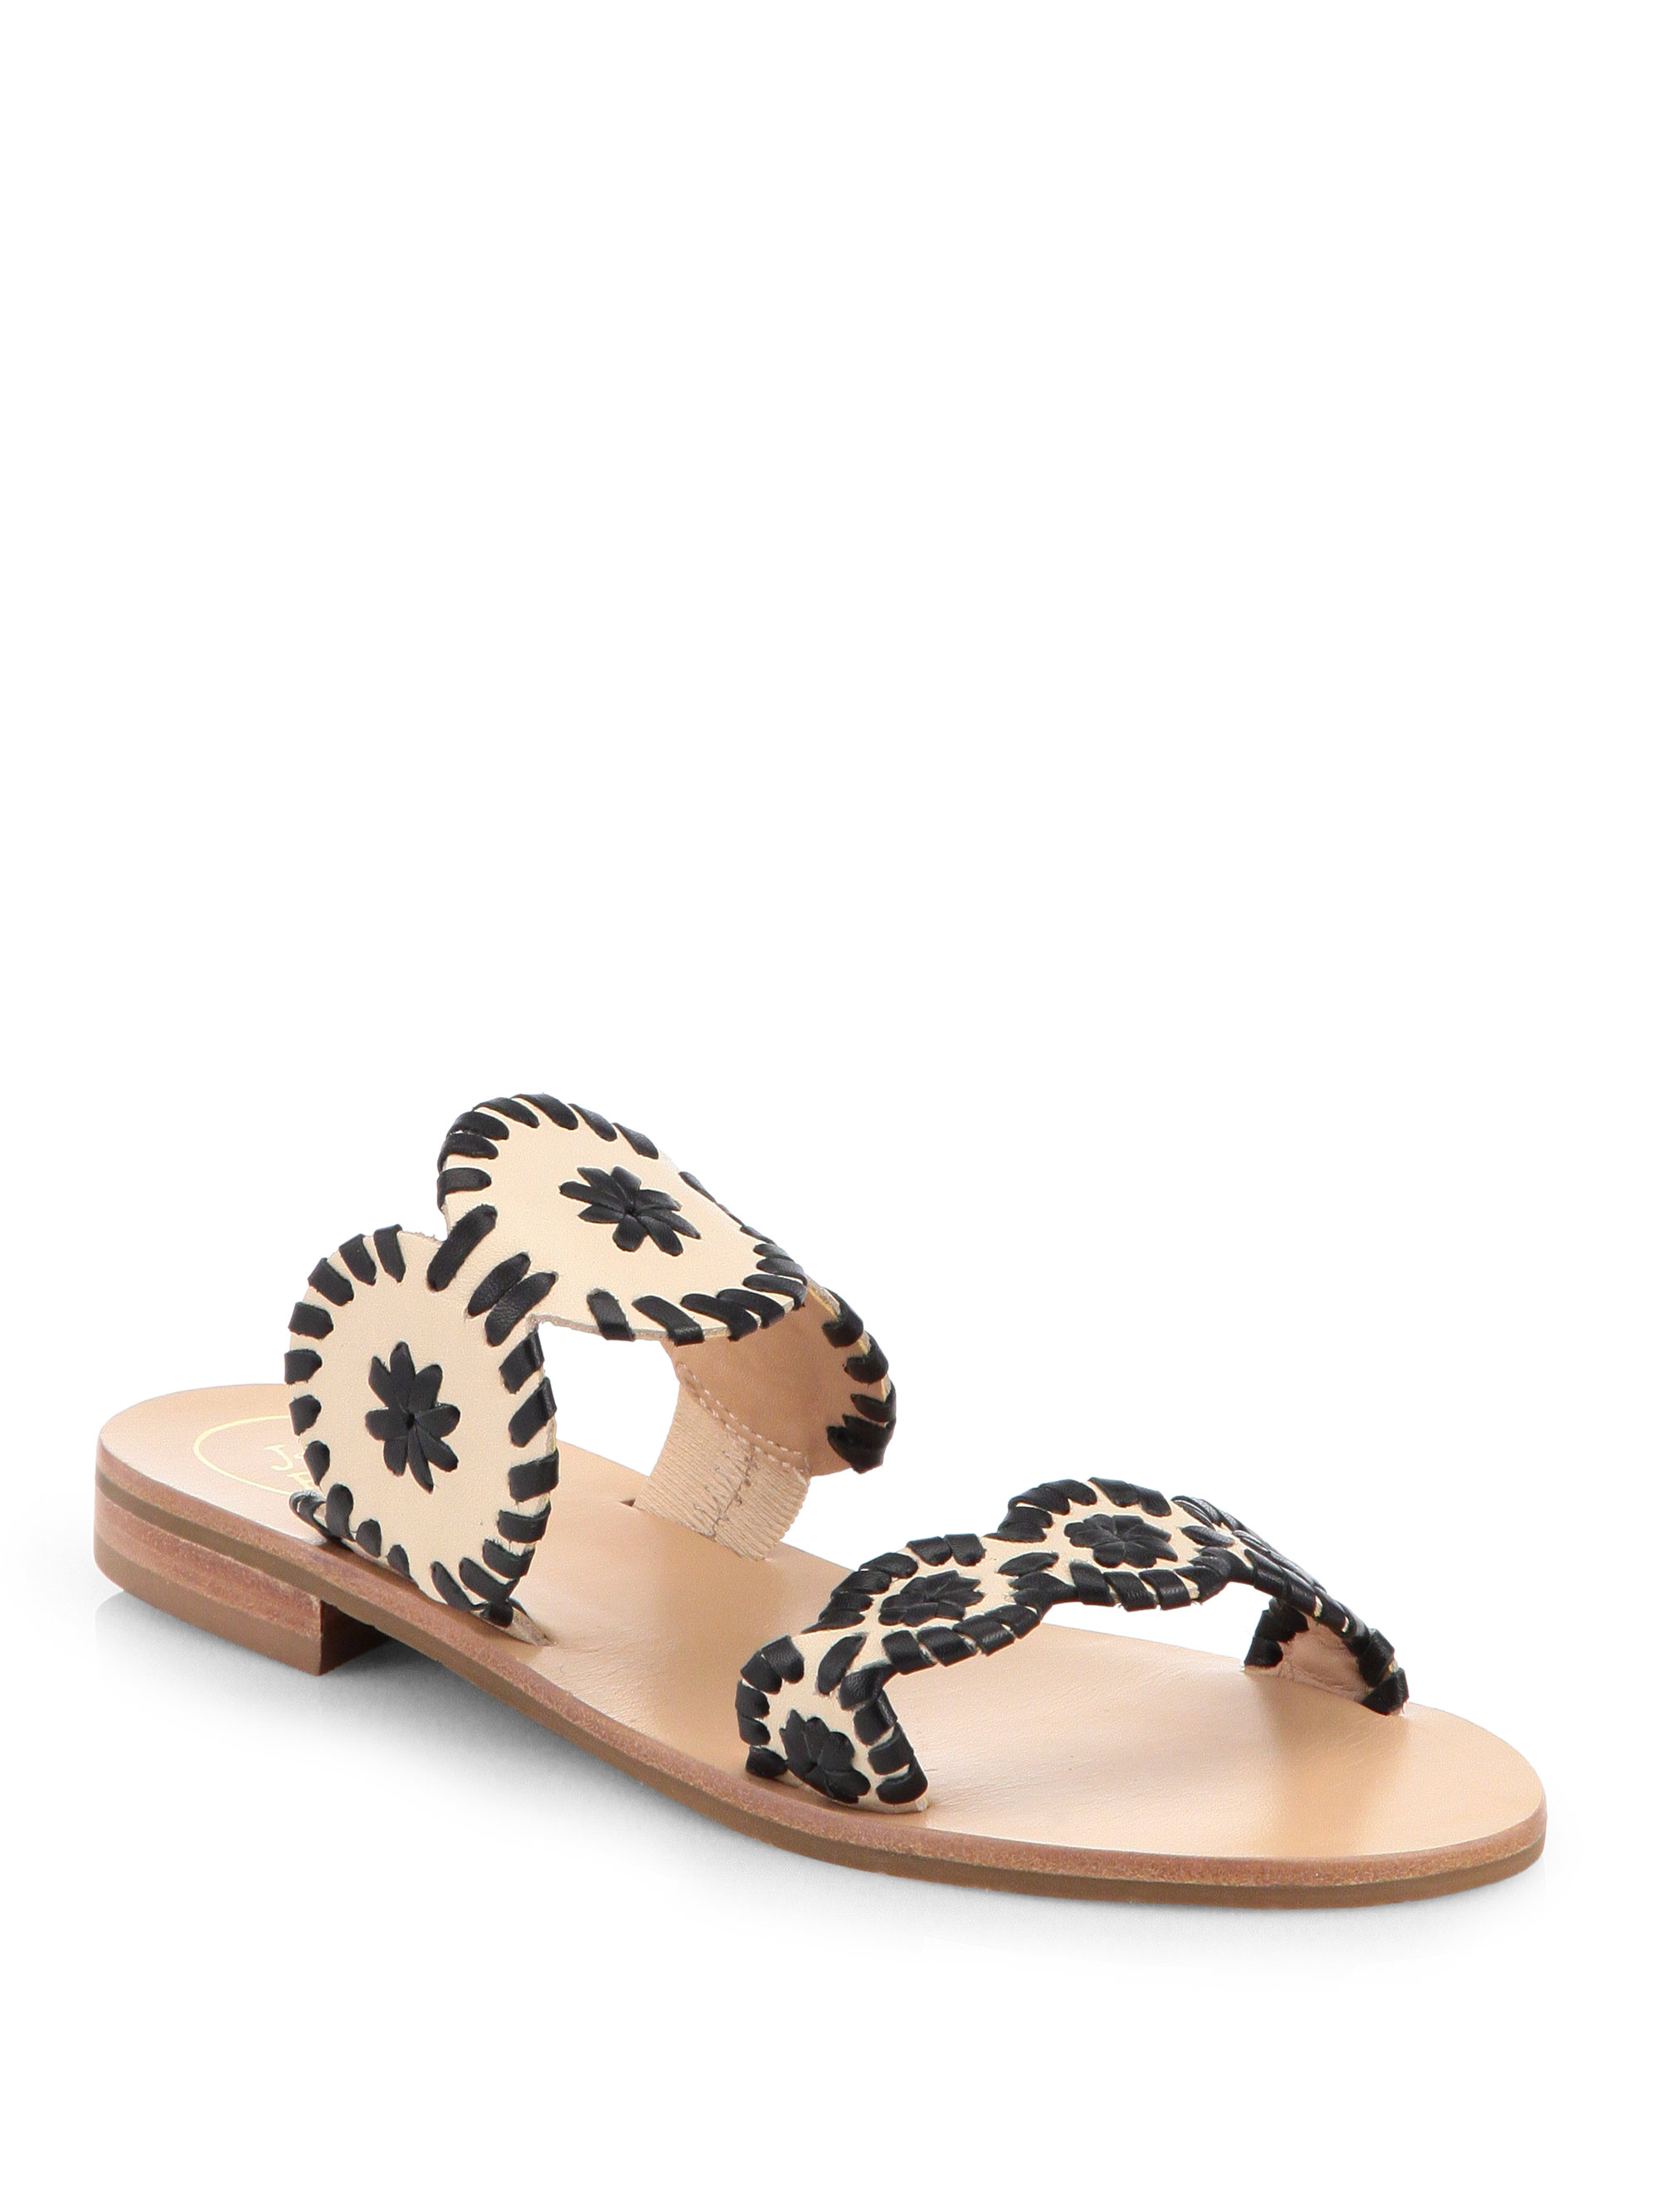 Jack Rogers Lauren Bicolor Leather Sandals In Black Bone